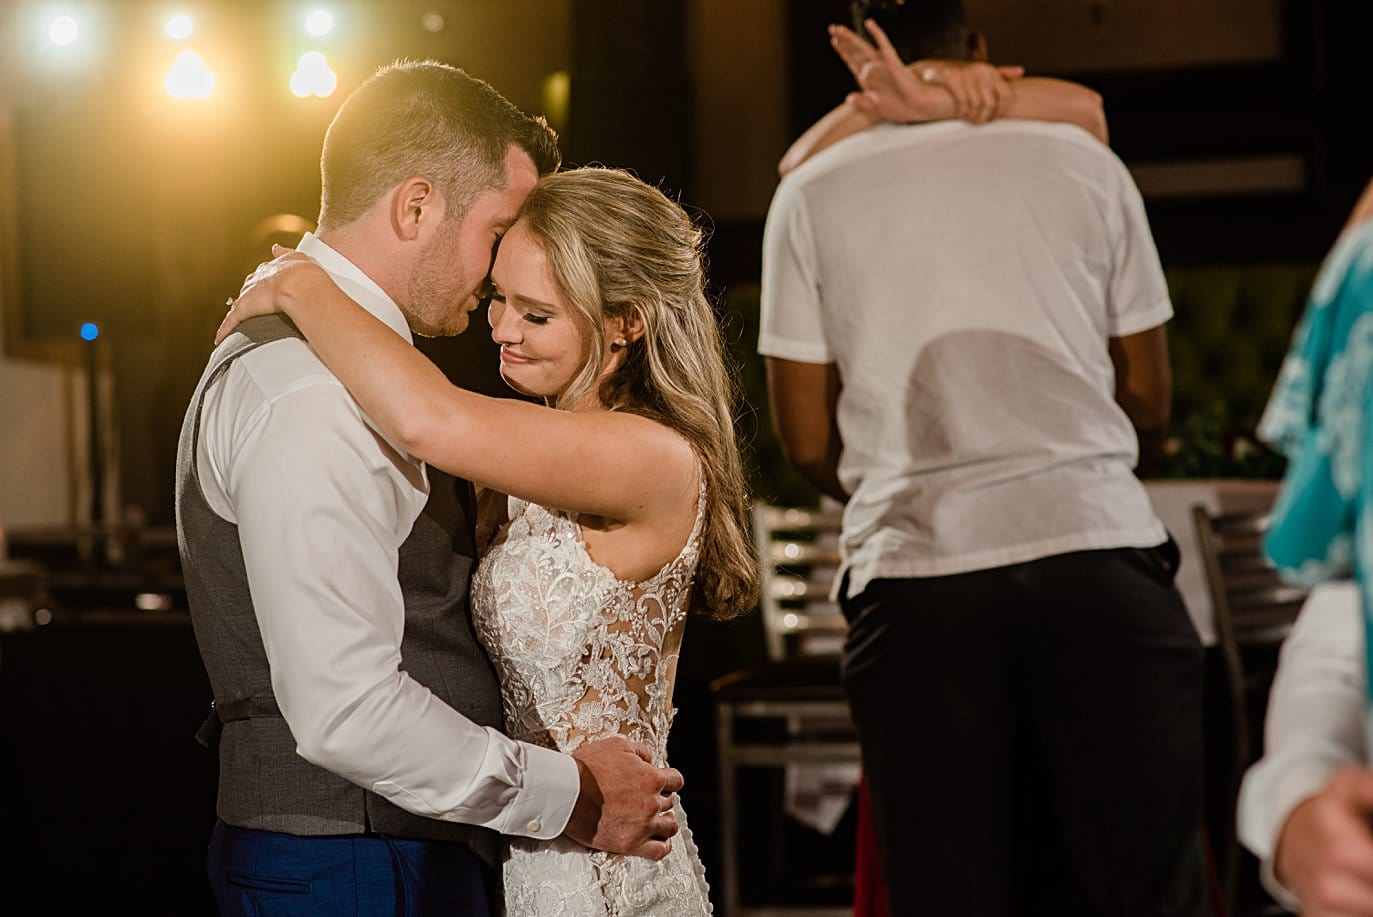 last dance between bride and groom at Vail Manor Lodge wedding by Aspen wedding photographer Jennie Crate